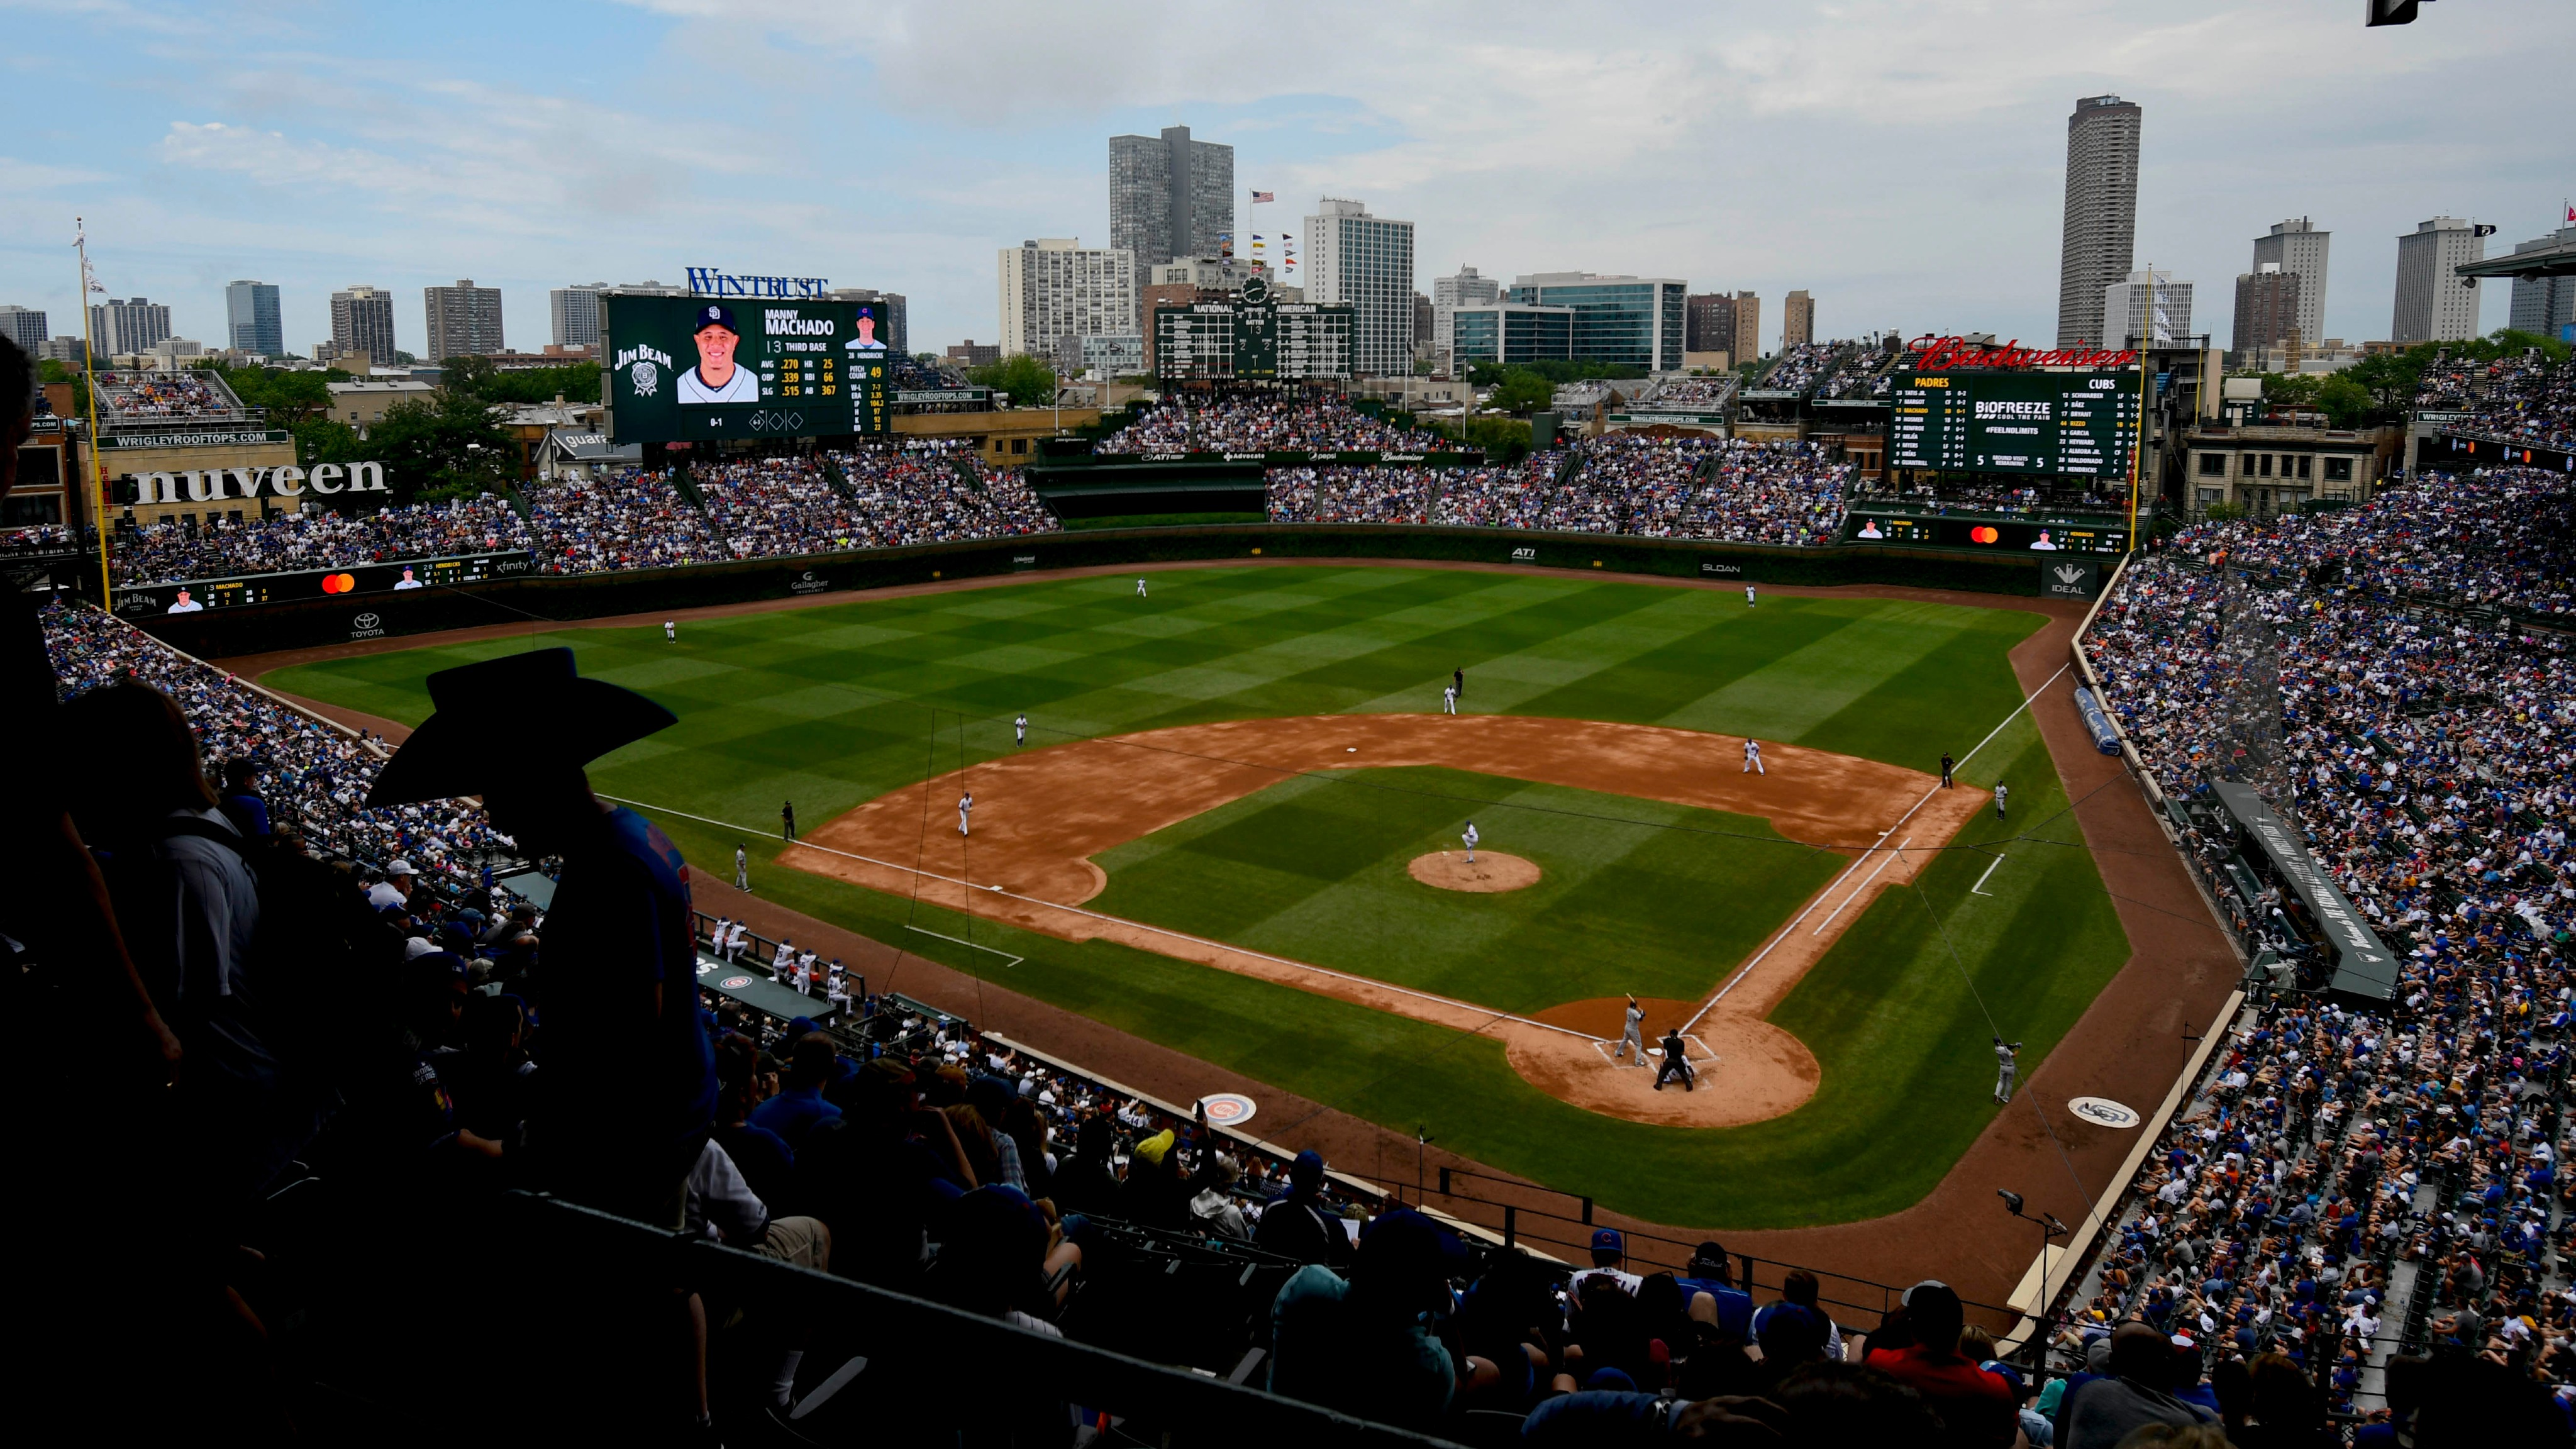 Source: Plan Is for Cubs, White Sox to Host Some Fans on Opening Day